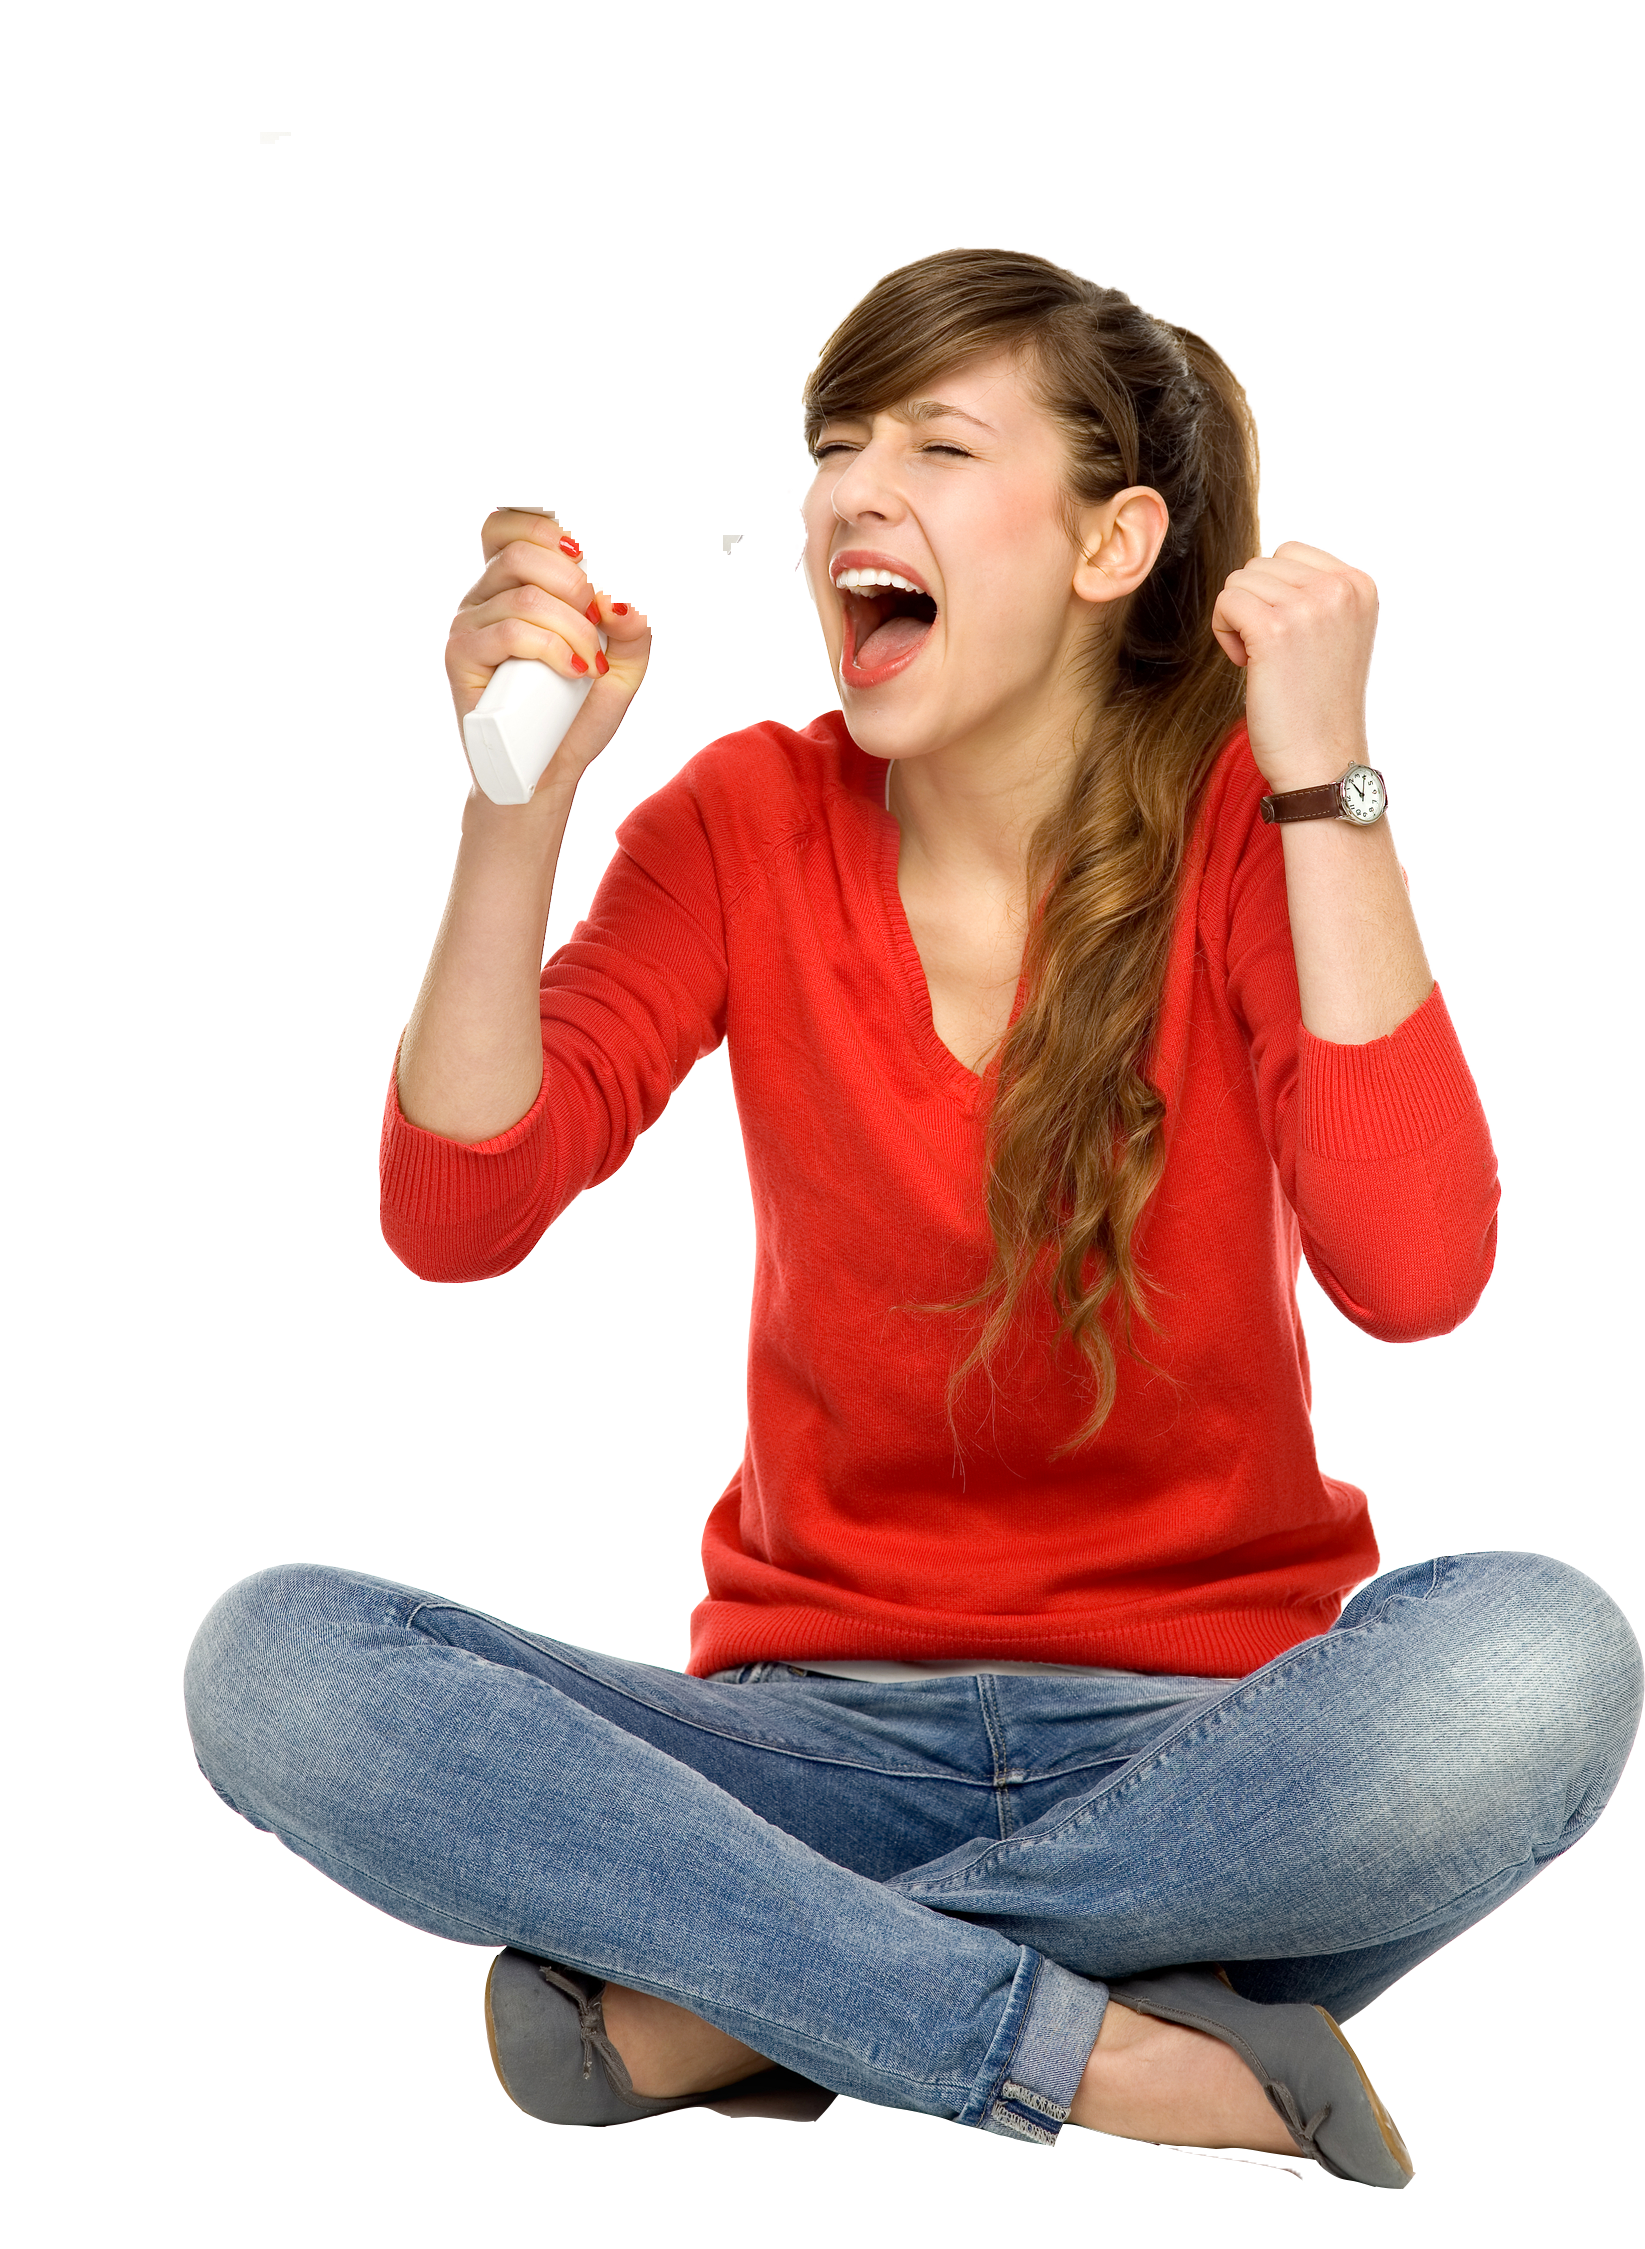 Girl screaming png. Student transprent free download